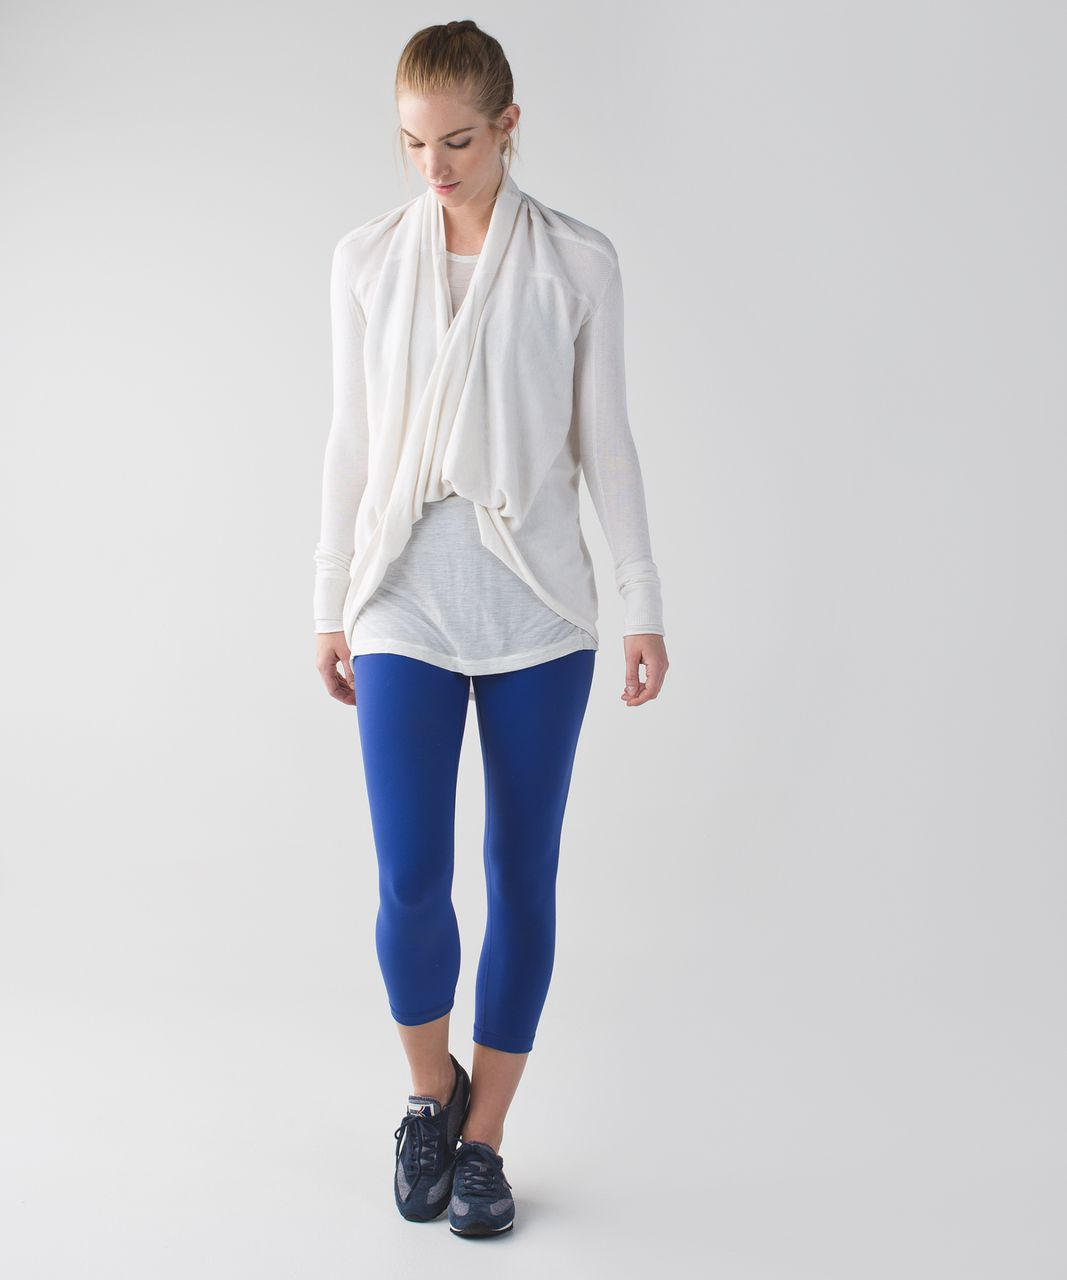 Lululemon Wunder Under Crop (Hi-Rise) *Full-On Luon - Sapphire Blue